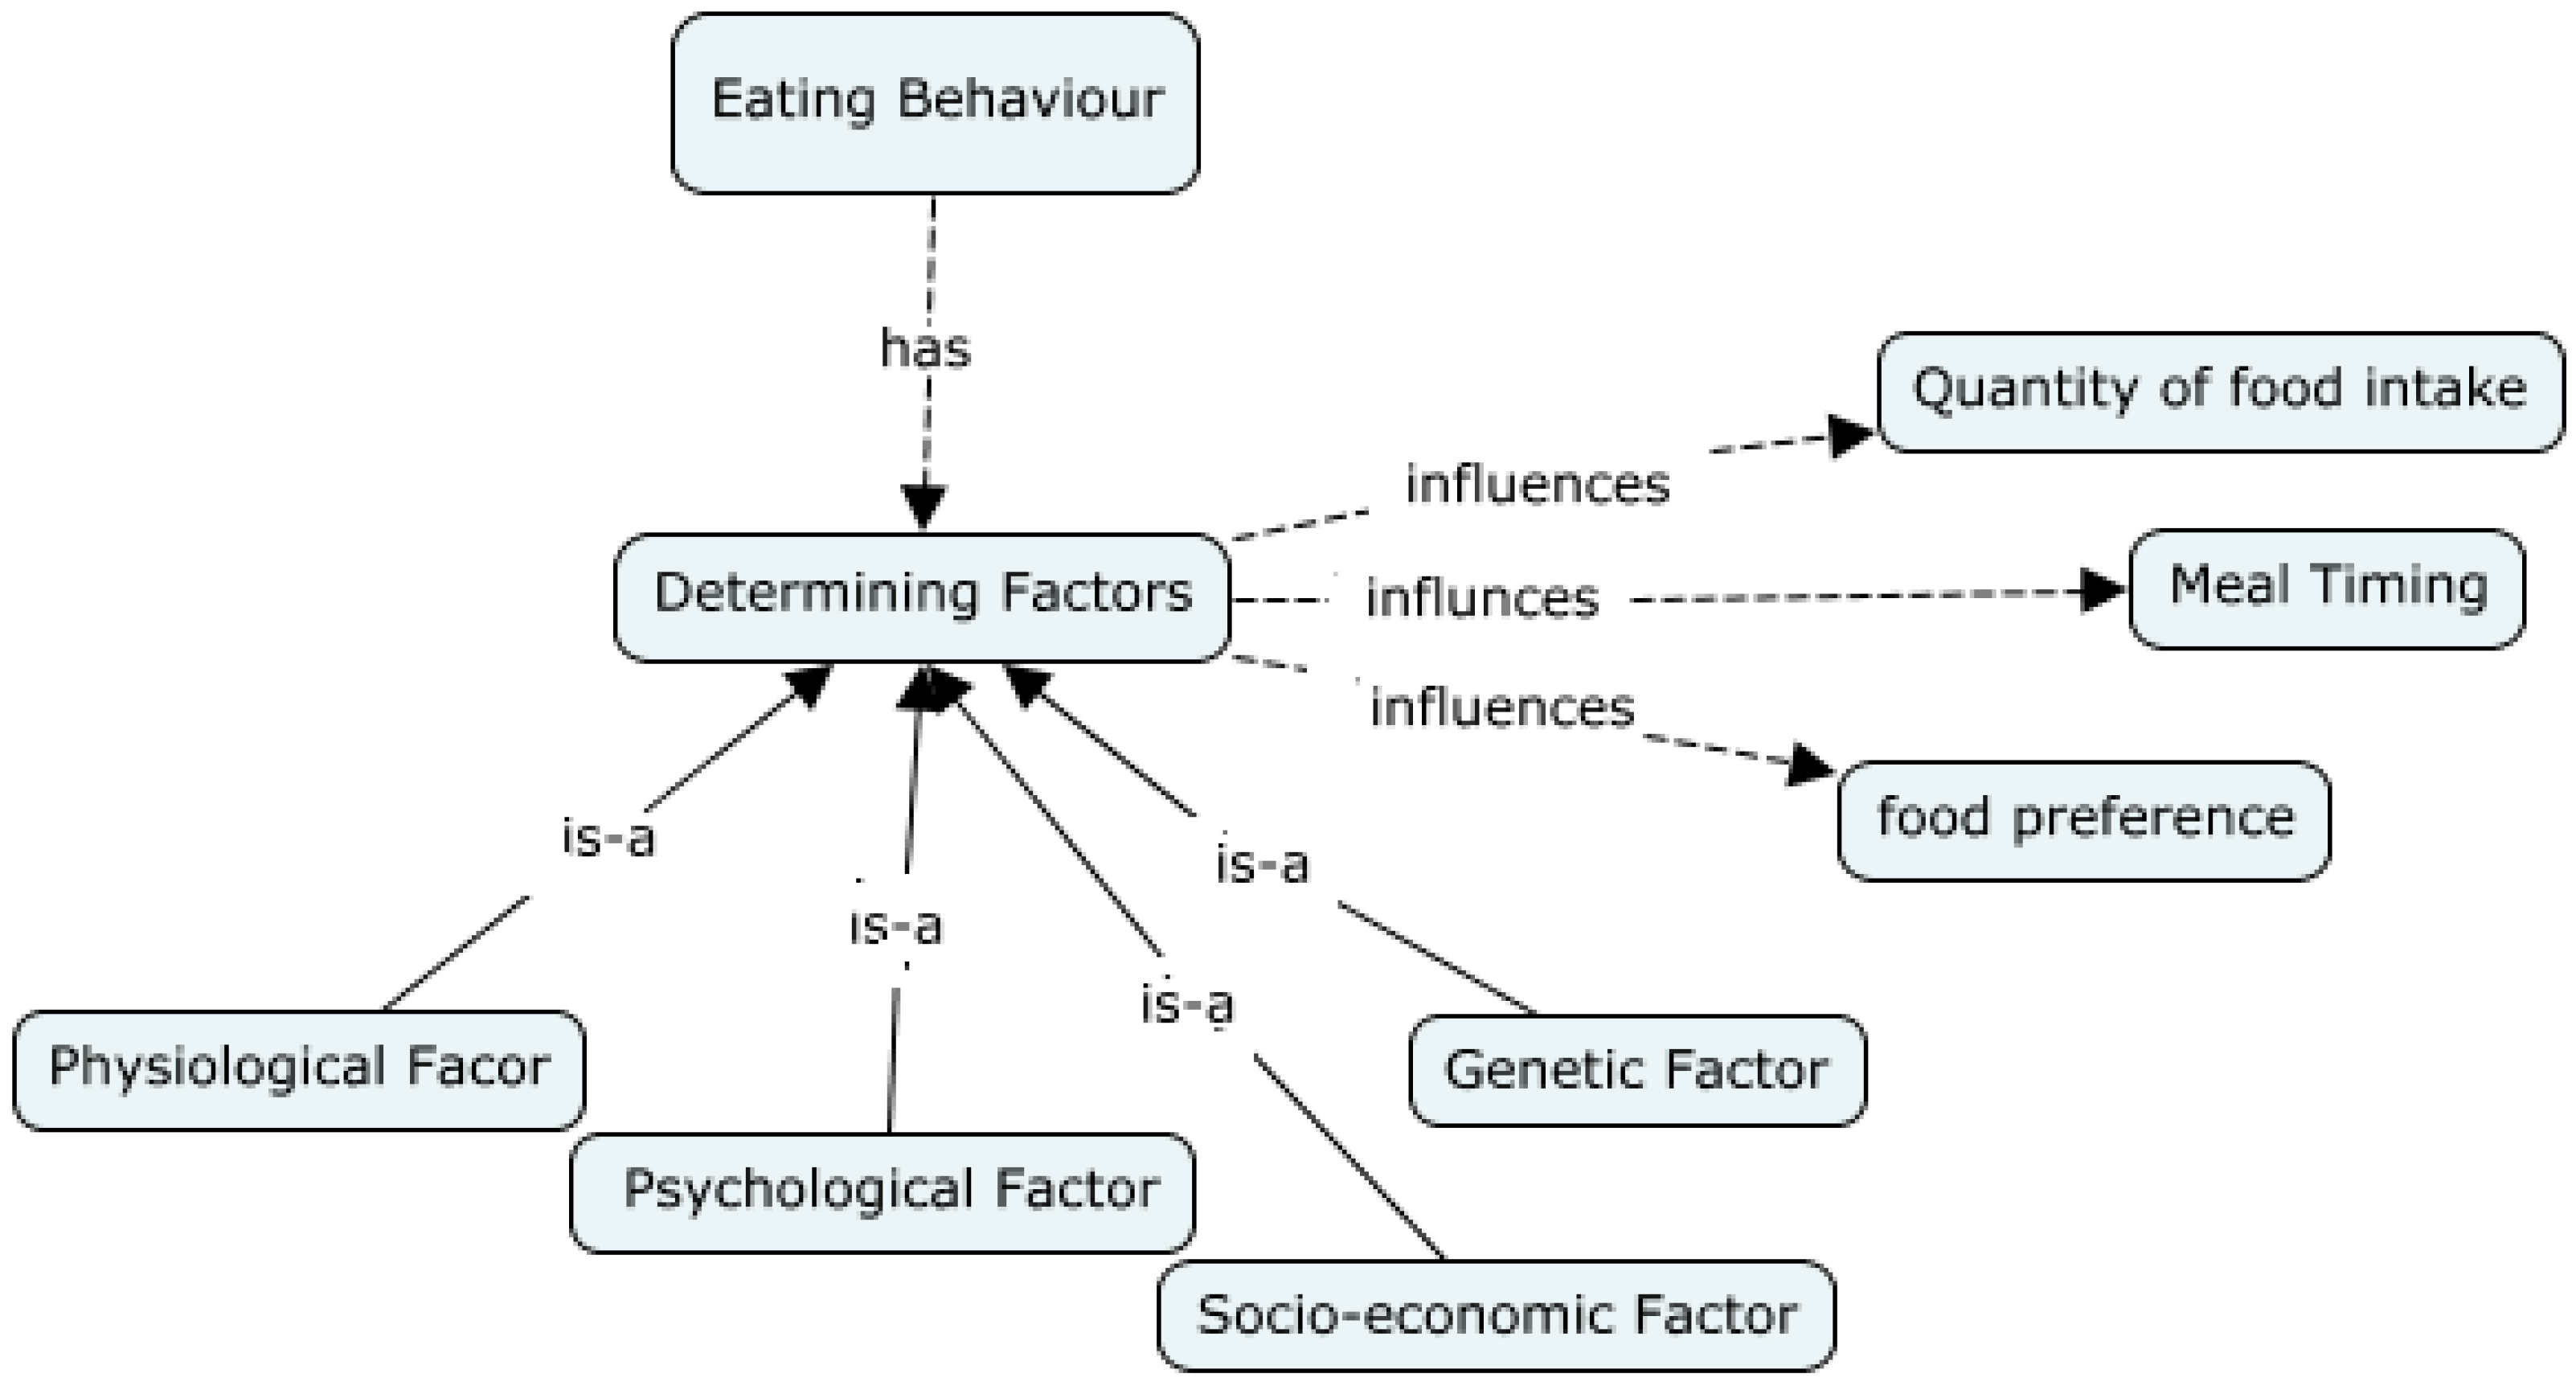 determining factors influencing health seeking behaviours (eg determining the name of a  from seeking health care, influencing migrants  demographic factors, health behaviours and health.